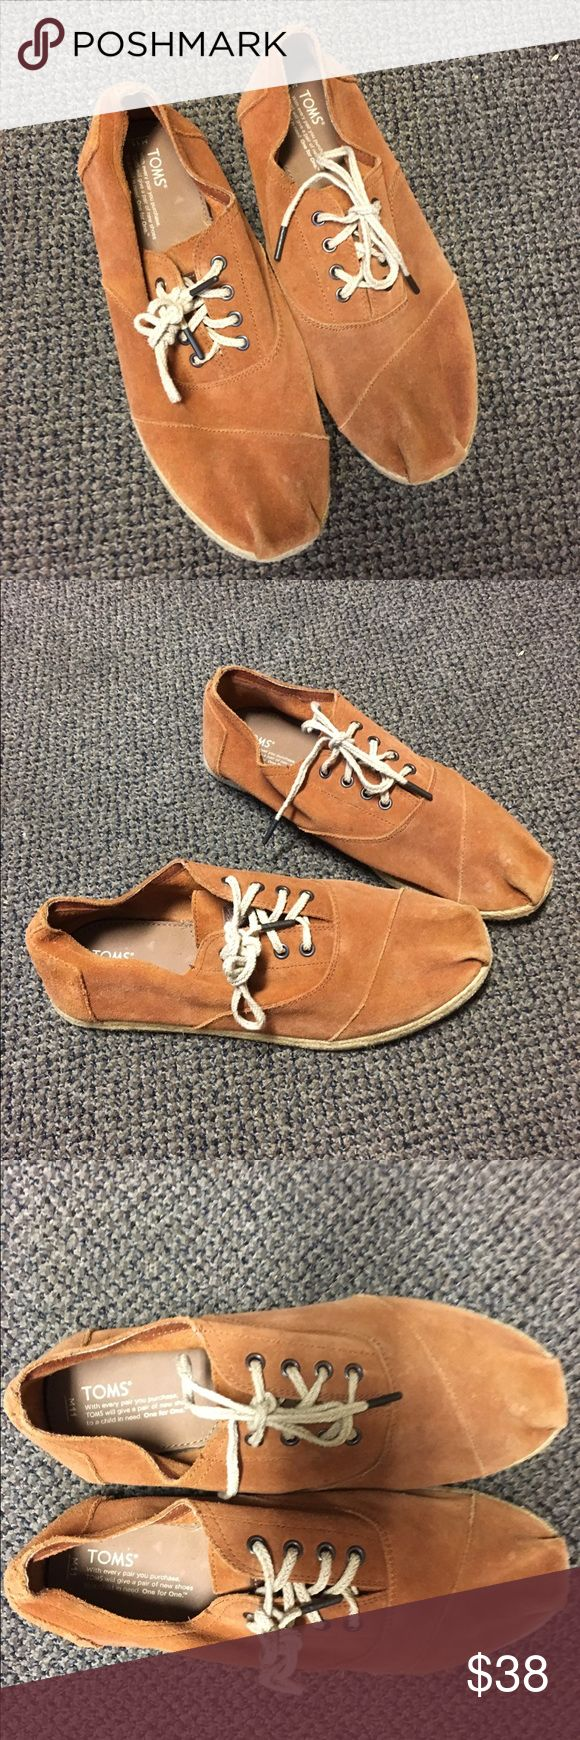 Men's Tom's Desert Oxfords Size 11, very little wear and in near perfect condition TOMS Shoes Oxfords & Derbys